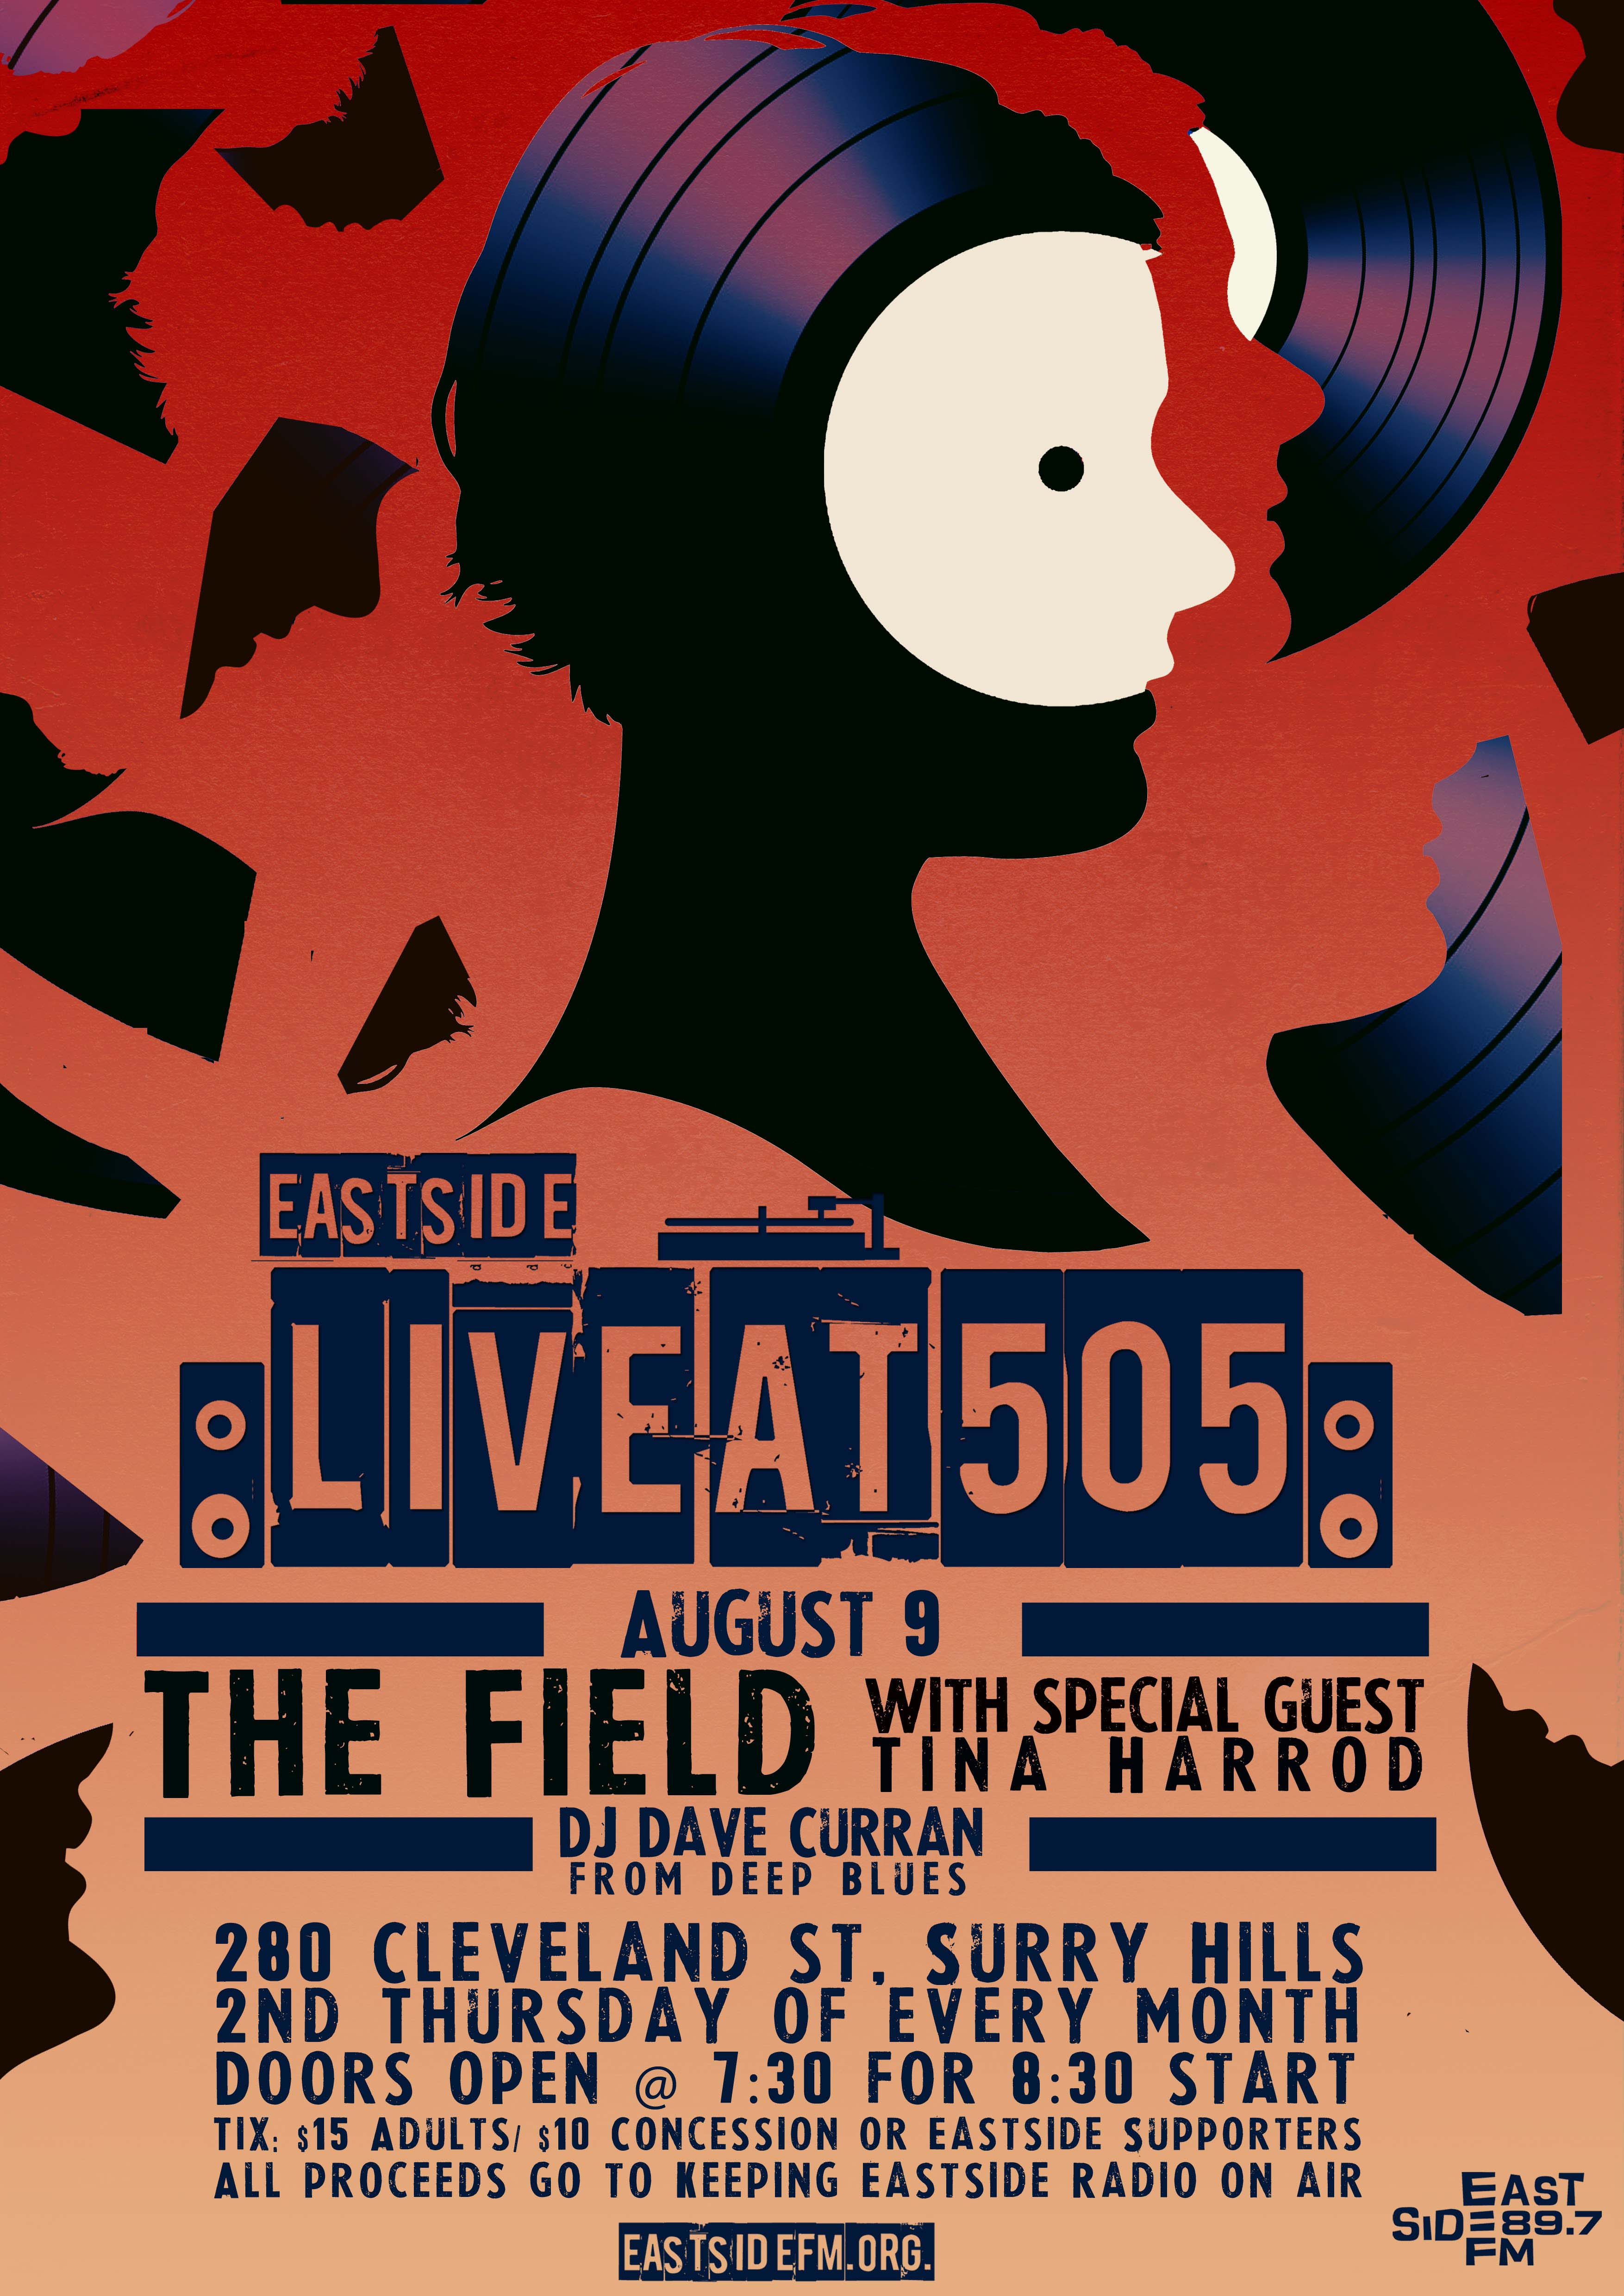 THE FIELD @ Live at 505